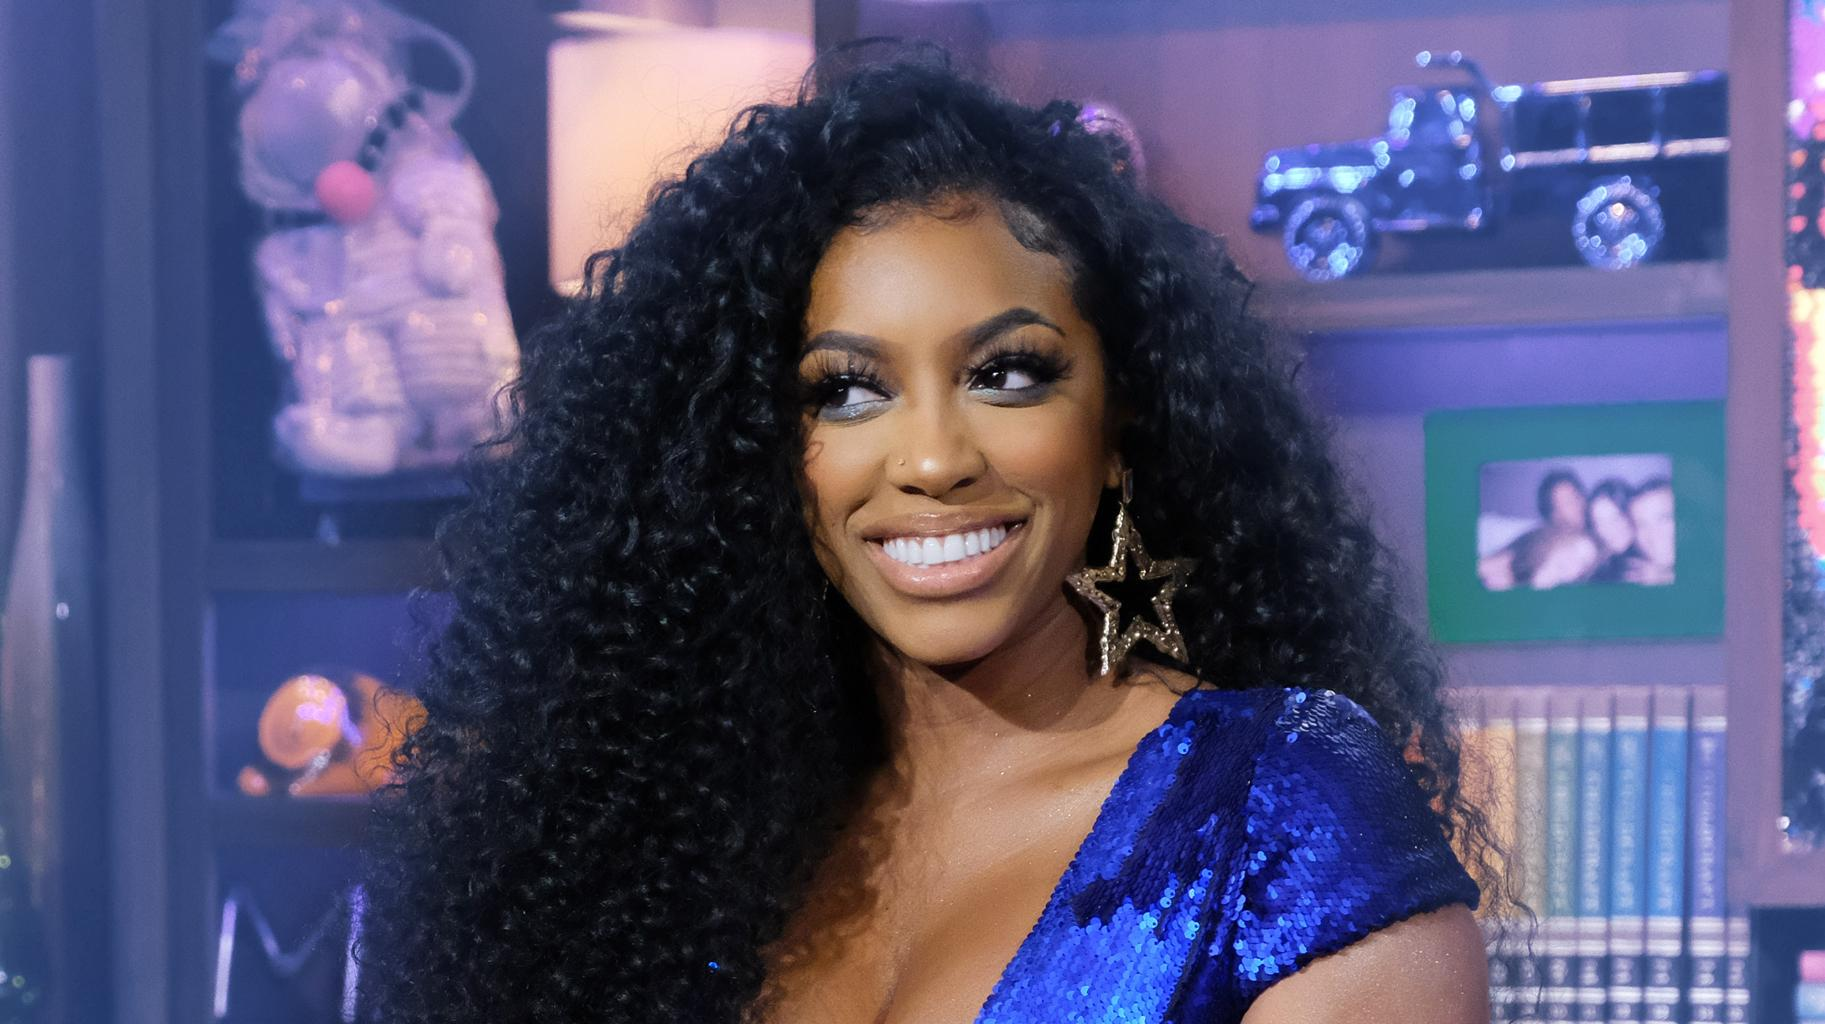 Porsha Williams Shows Off Her Cousin And Fans Say She Looks Like Aaliyah - Check Out Her Gorgeous Pics